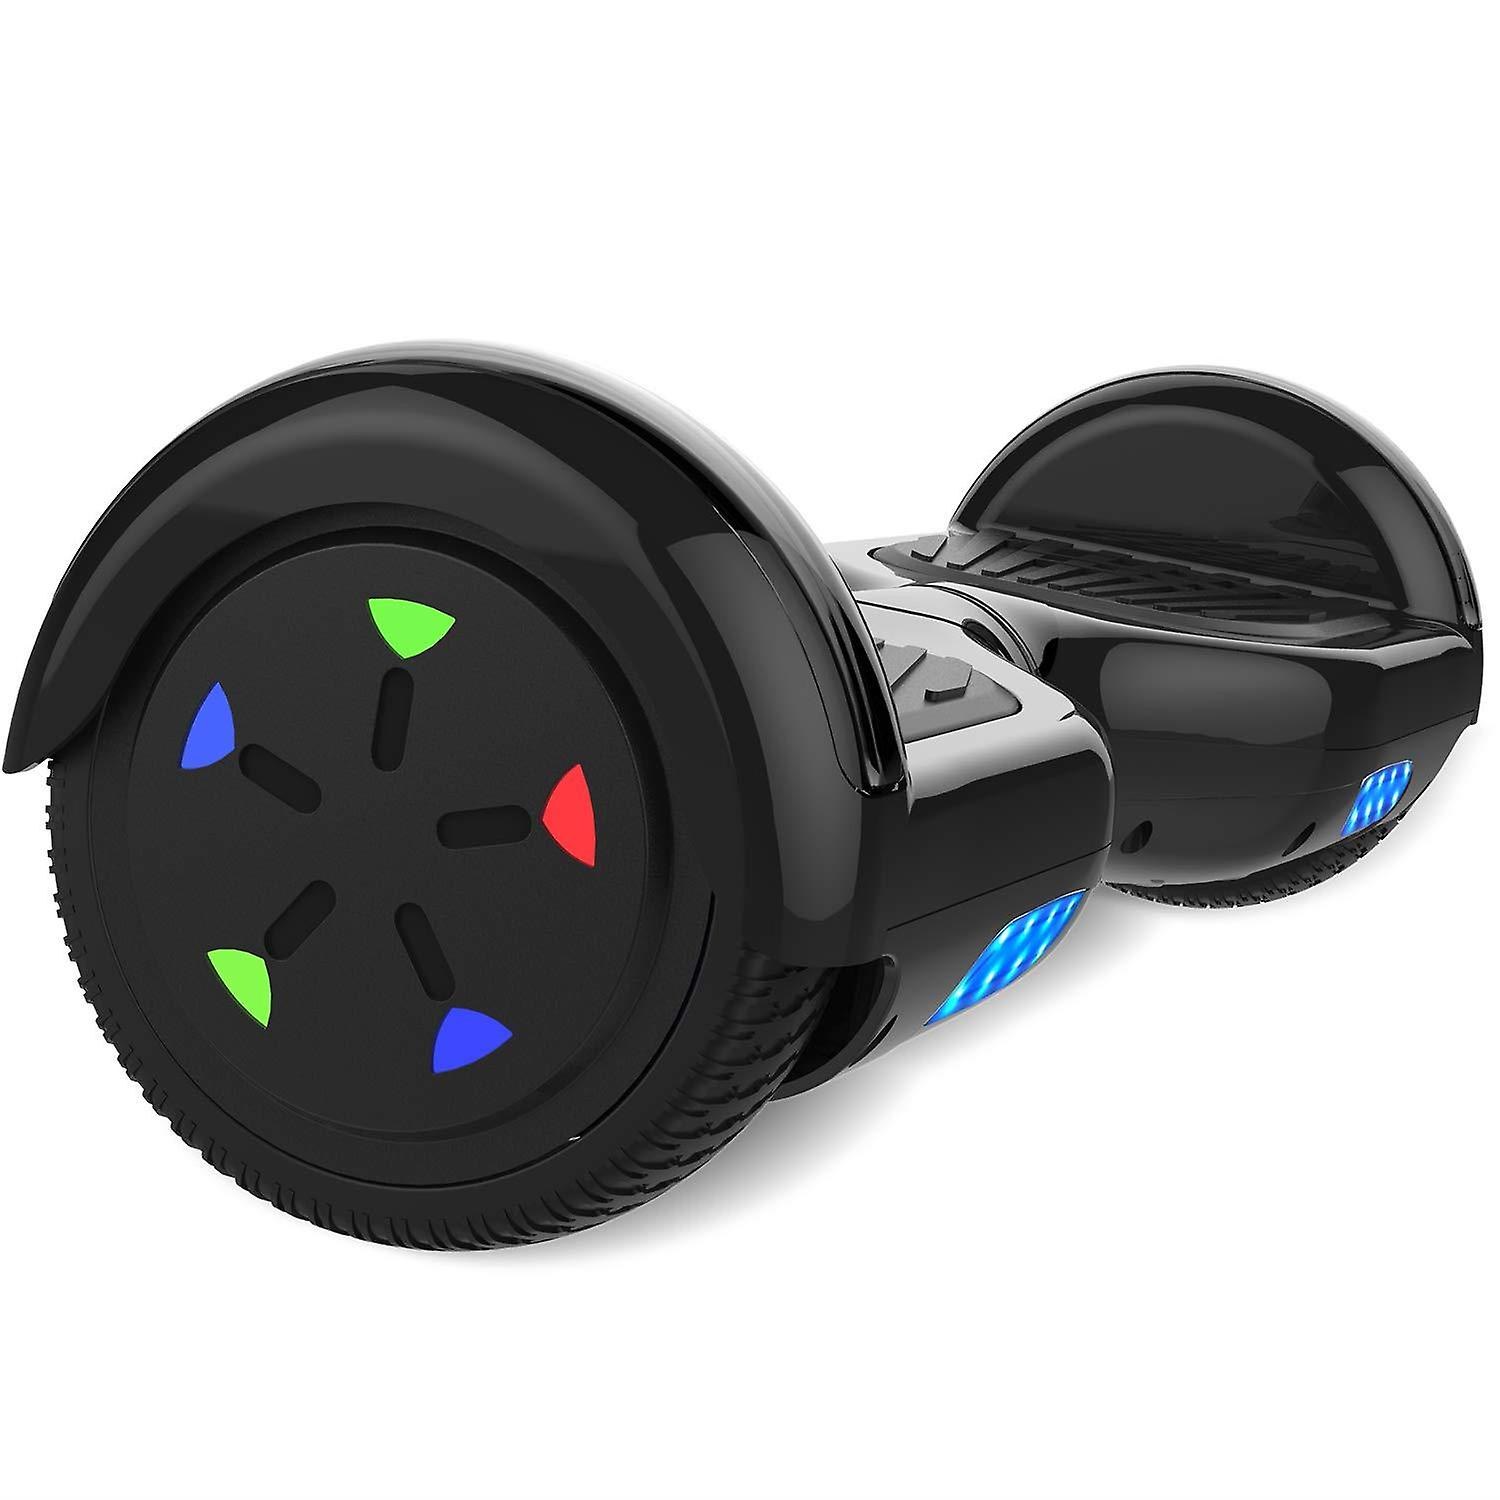 Hoverboard- Segway - Electric Skateboard - Electric Hoverboard - 700W Motor - Built-in Bluetooth Speakers - LED - Self Balanced Electric Scooter with CE Safety System - New Design 2020Bluetooth hoverboard